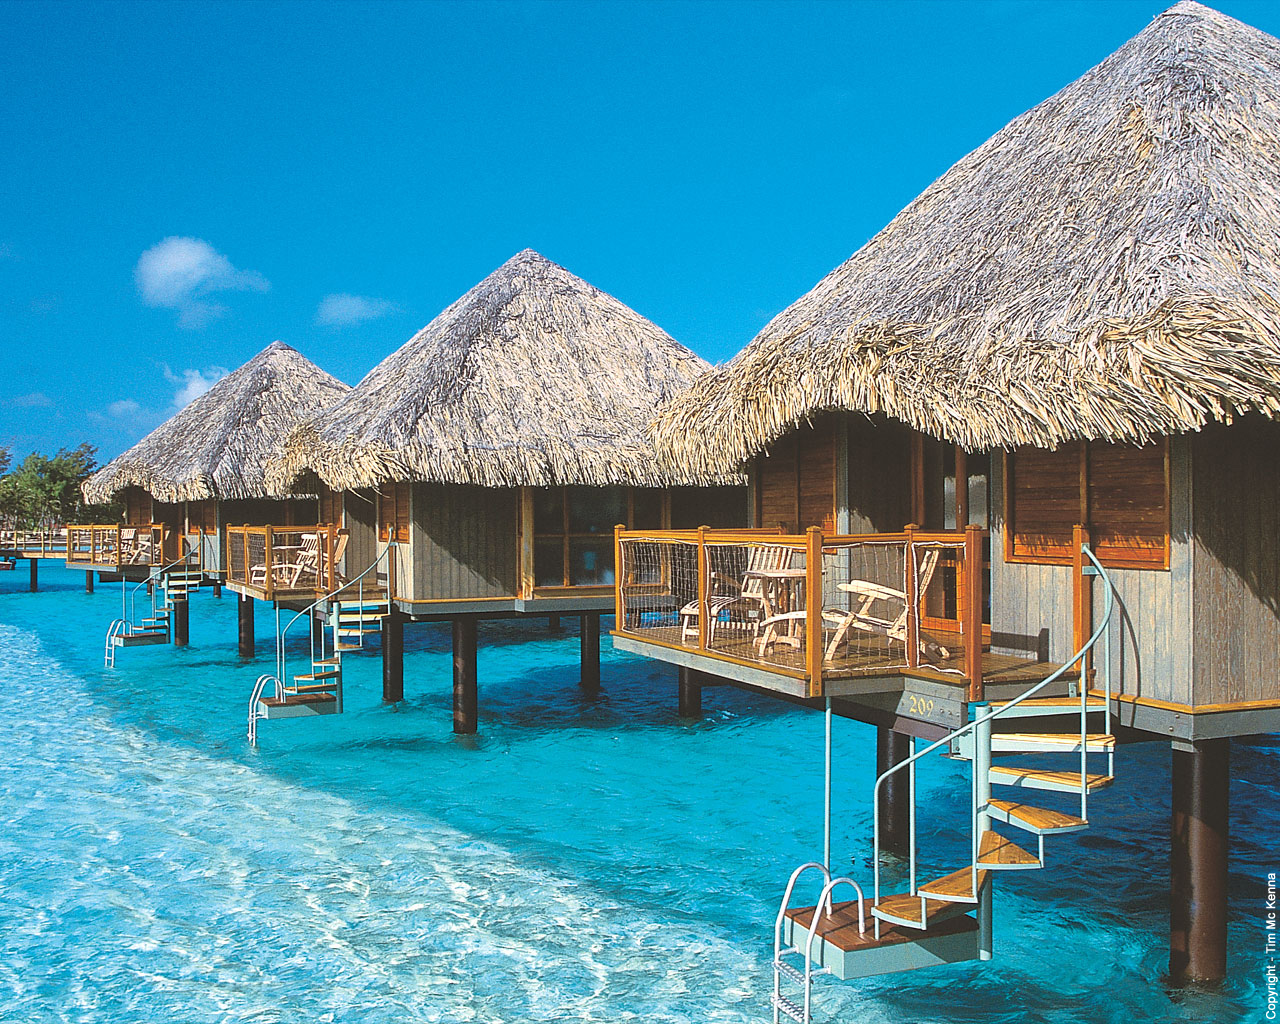 Fantastic Wallpaper High Resolution Bora Bora - bora-bora-3  You Should Have_519590.jpg